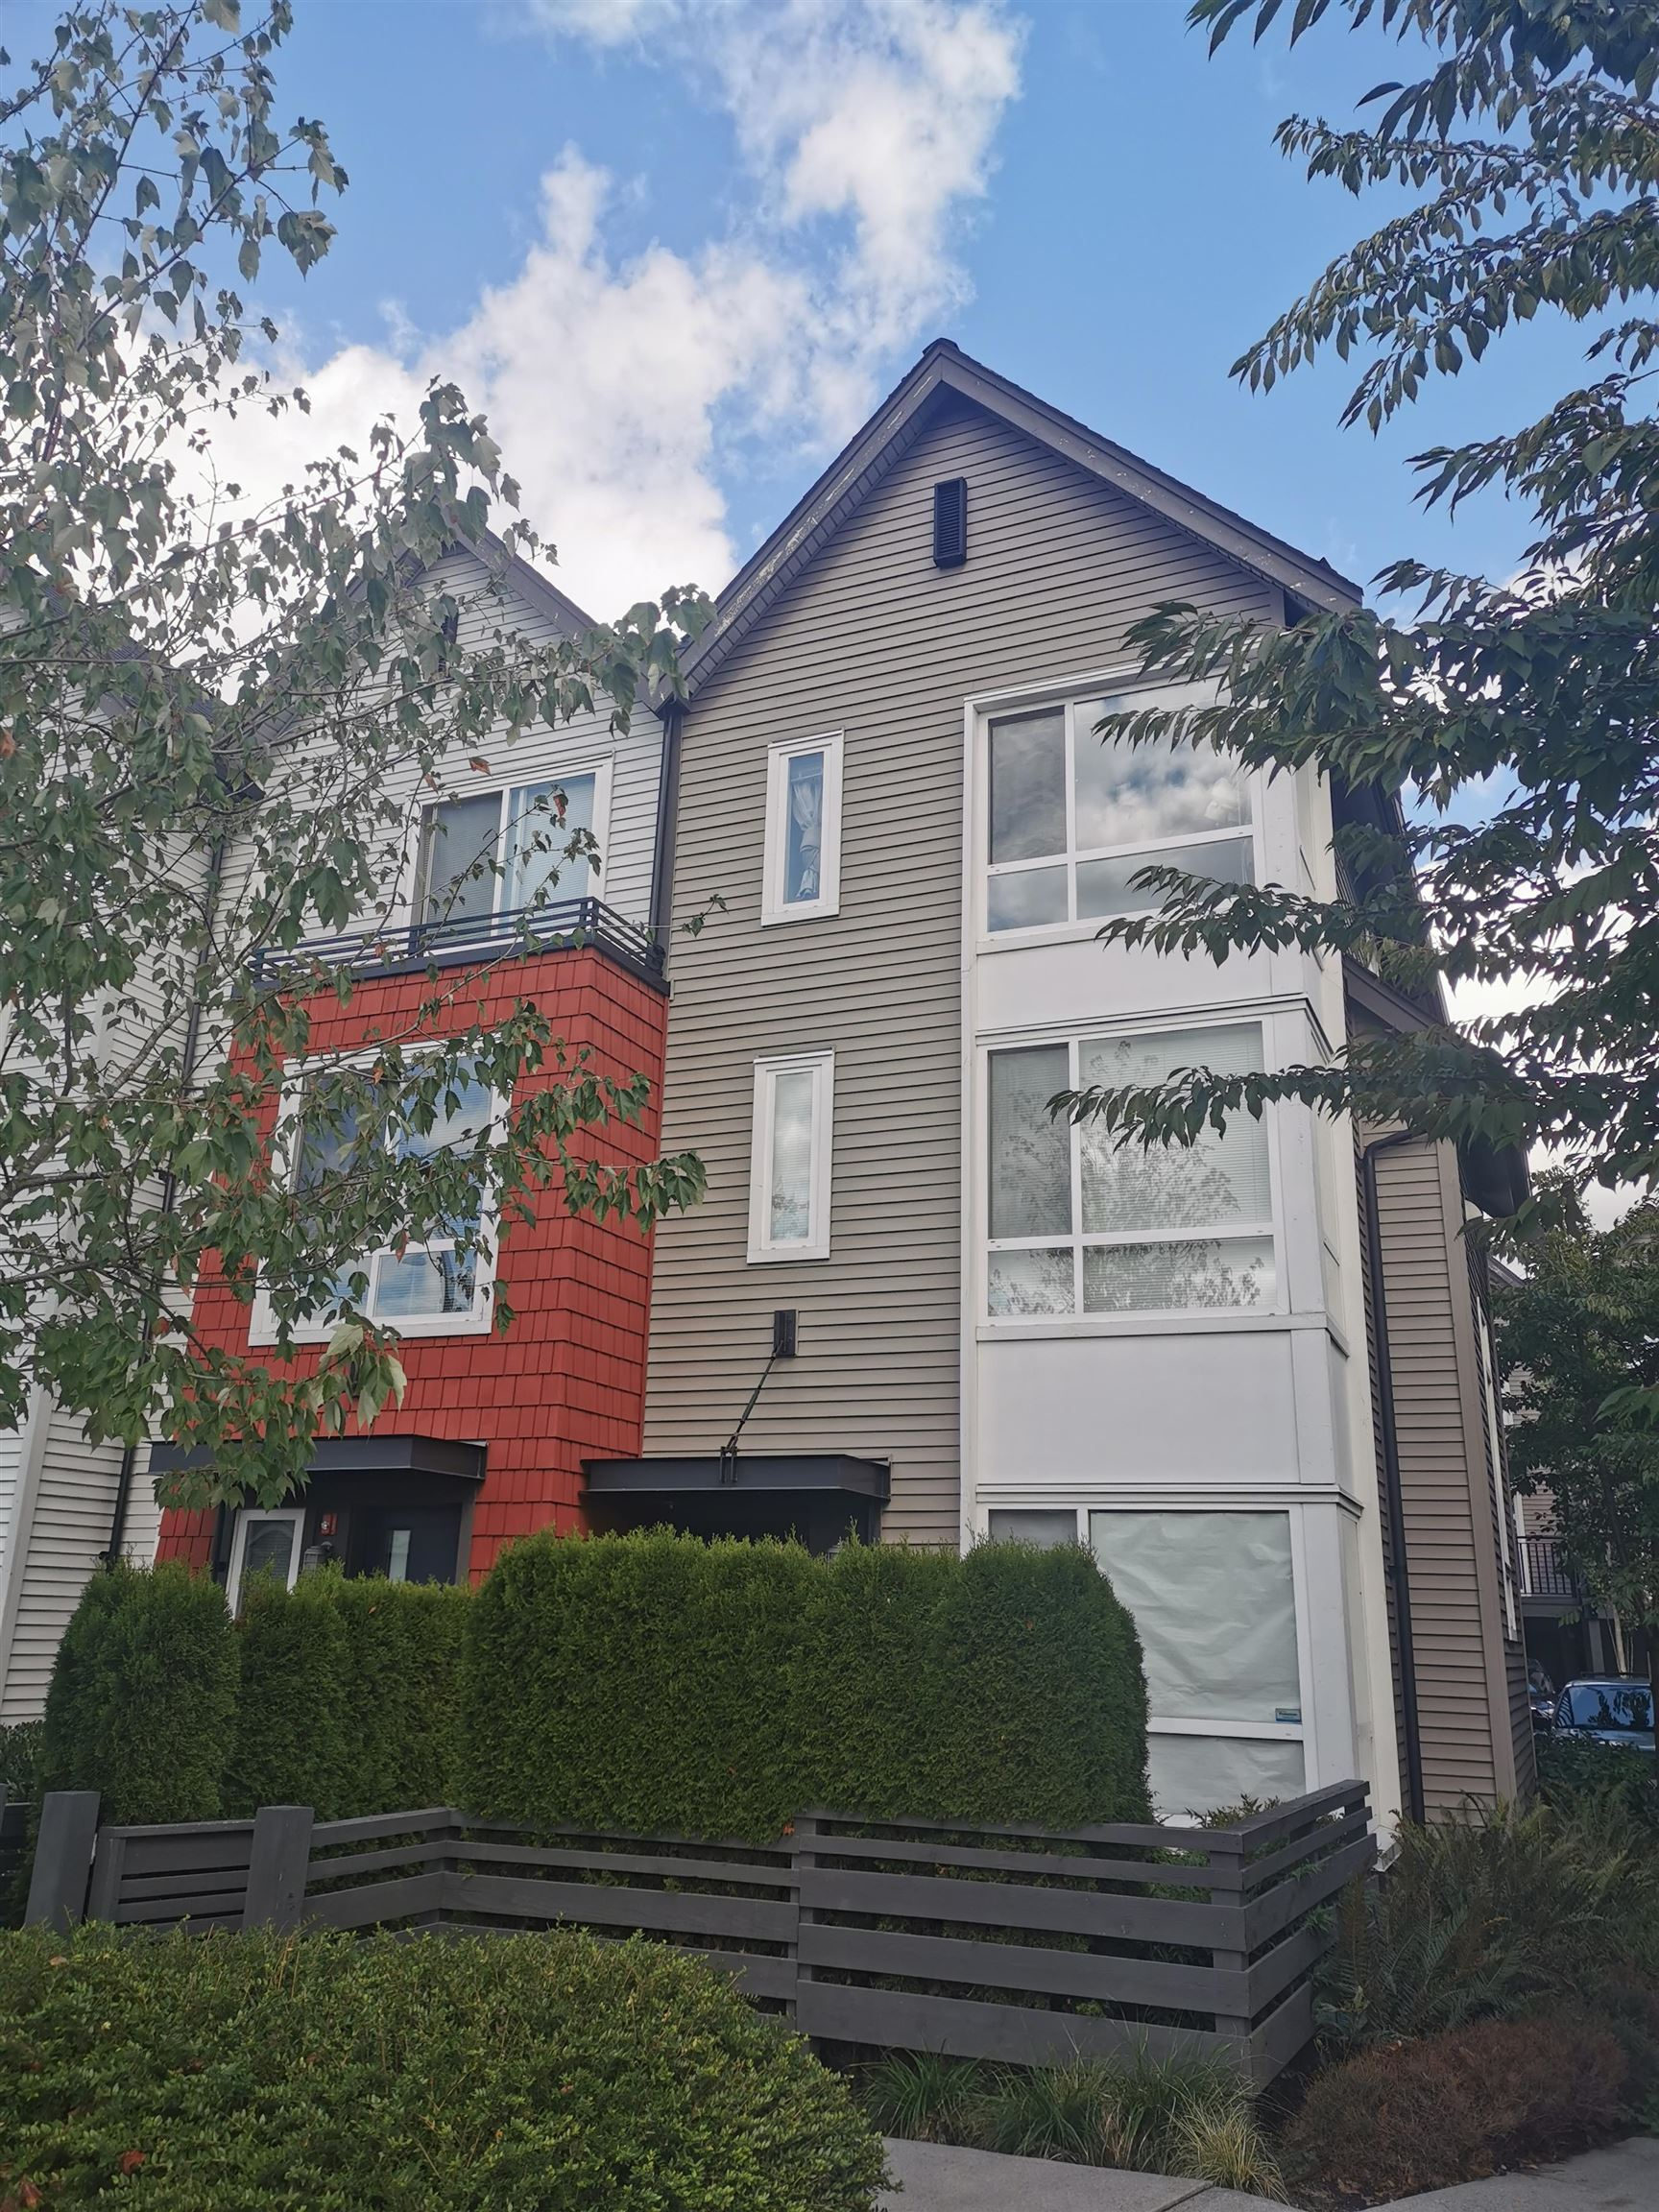 """""""Fremont Blue"""" by MOSAIC, This spacious 2 bedroom 2 bath End Unit has 9' ceilings, open concept floorplan featuring a gourmet kitchen, S/S appliance, quartz counters & large island any many more. Upstairs features spacious master suite & large 2nd bedroom. The entire unit is facing SE, The Golden Corner, and over look the beautiful  Pitt River Bridge. Tandem garage can be use as with extra storage room or turn it into a 3rd bedroom. Steps from exclusive """"River Club"""" including Clubhouse, Hot Tub, Outdoor Pool & BBQ. Excellent Location close to Costco, Walmart, Home Depo, PetSmart, Save On Foods, Starbucks & Golf country club and many more. Top Schools Birchland Elementary & Terry Fox Secondary. Pets & rentals are allowed."""